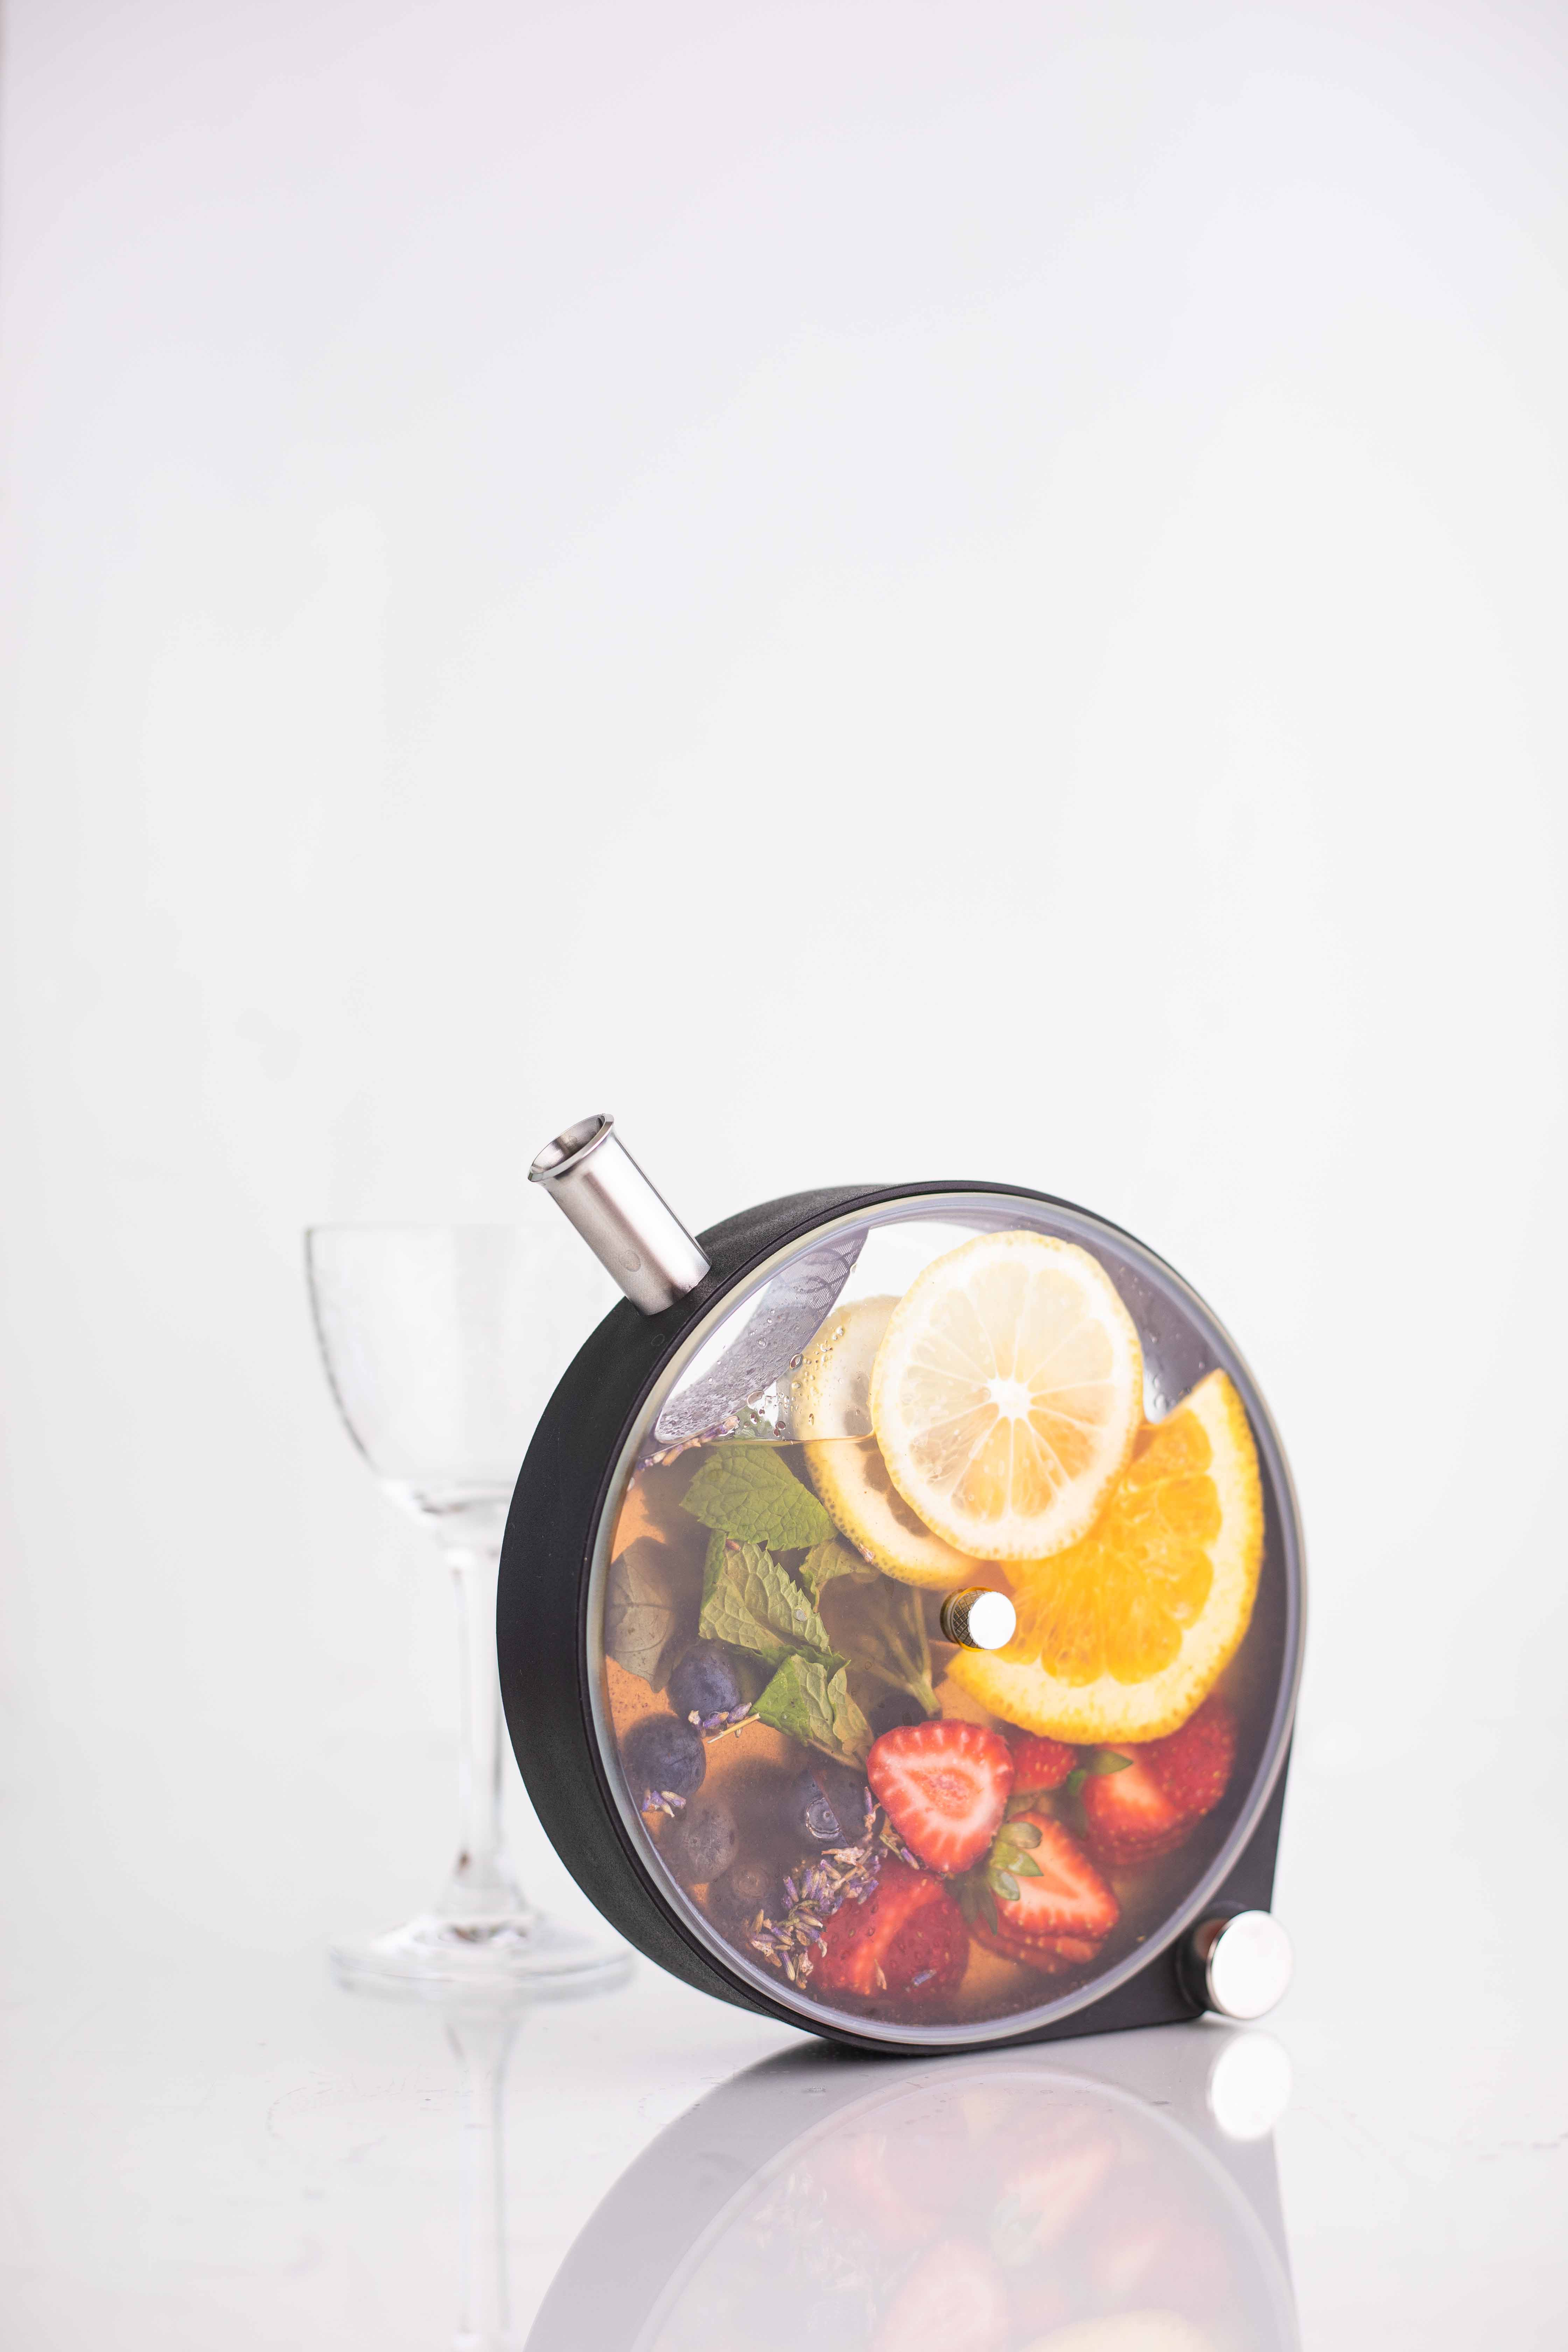 #PridePour Rainbow Porthole Infused Cocktail – Tequila, Strawberry Mint